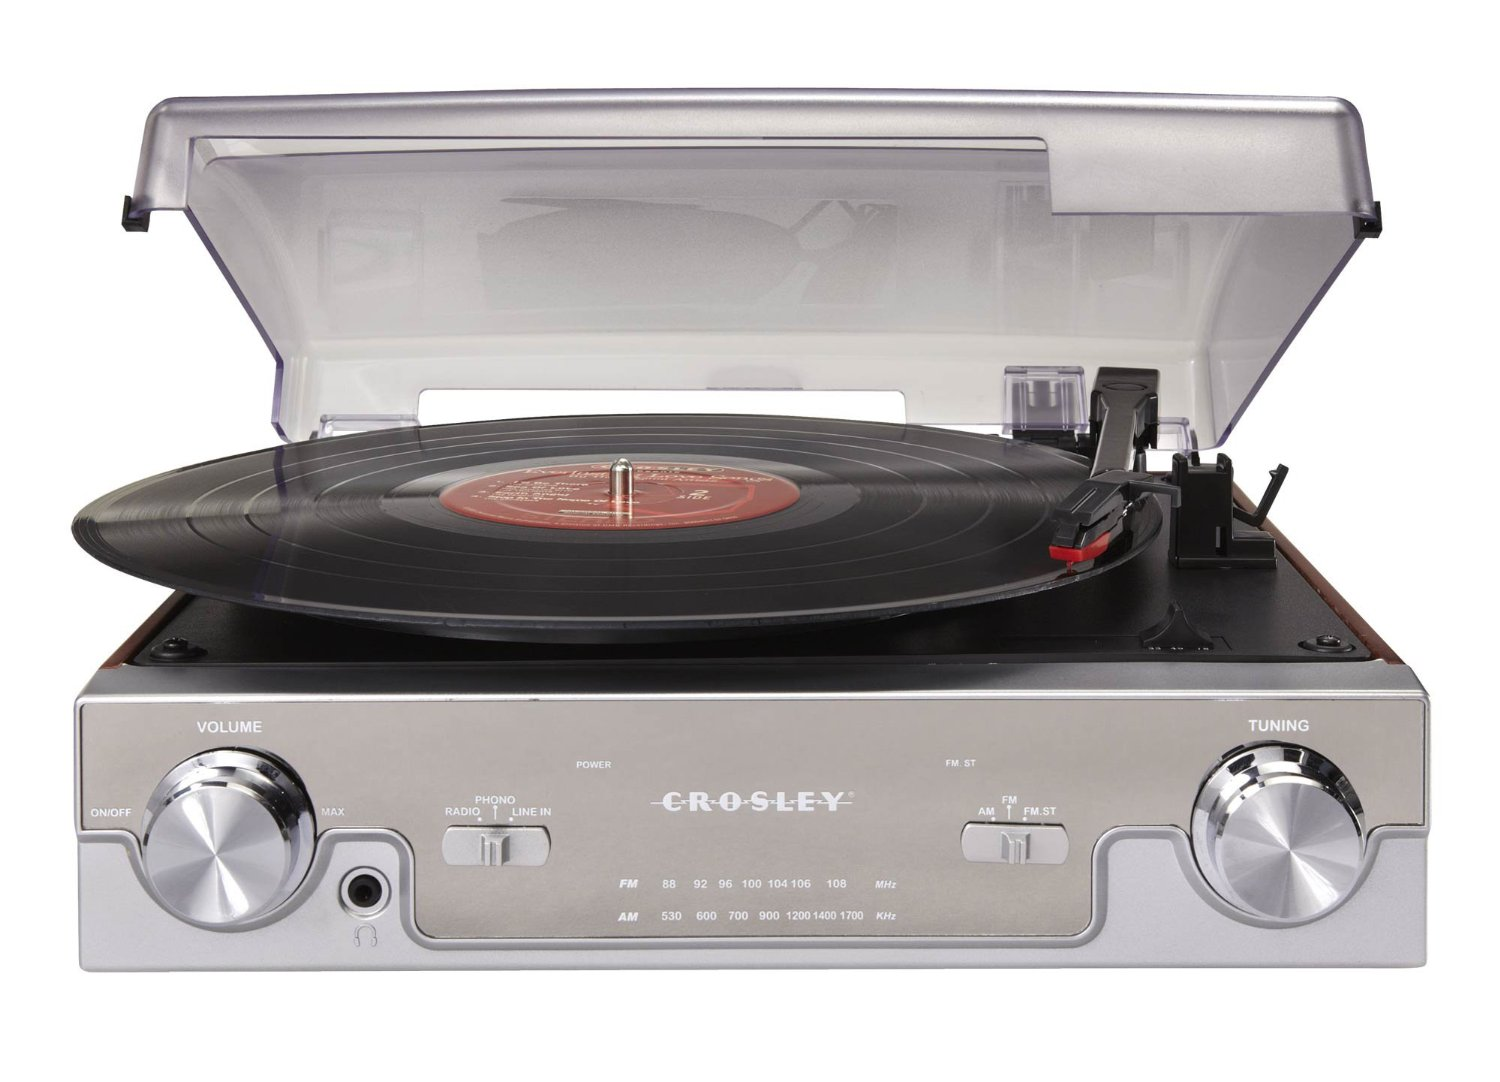 Crosley Radio Crosley Cr6005a Ma Tech Turntable With Am Fm Radio And Portable Audio Ready Mahogany